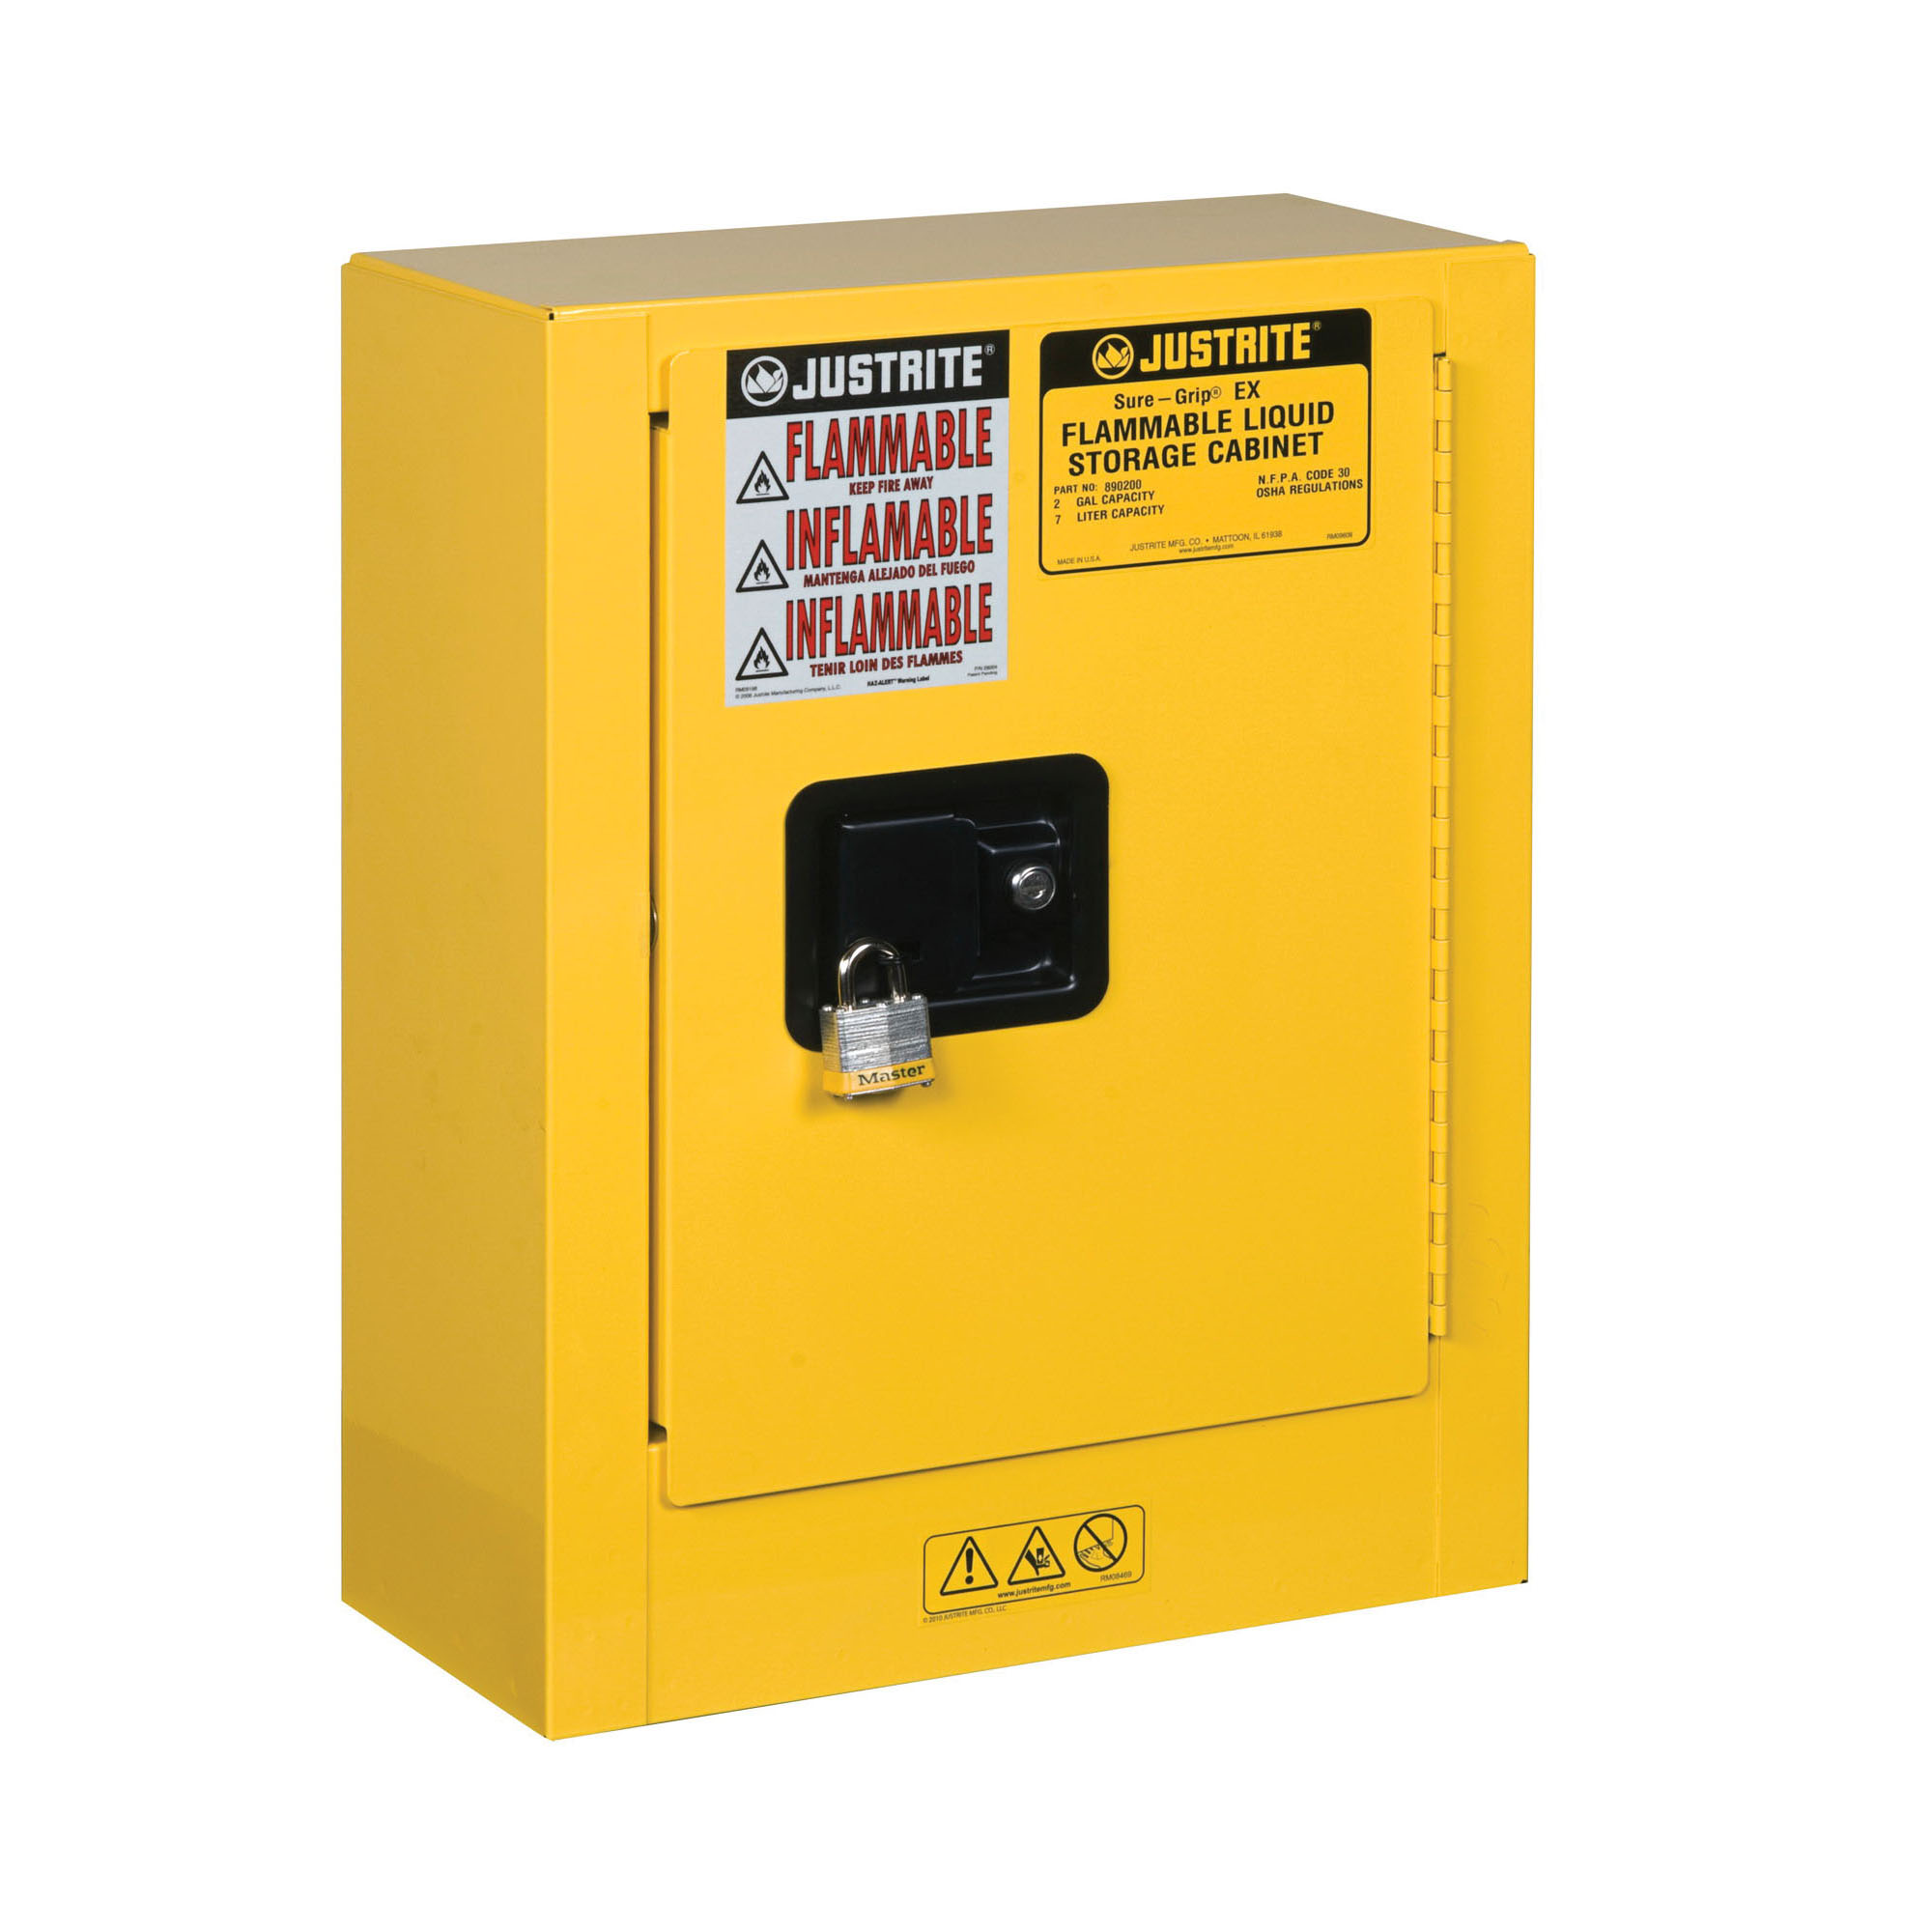 Justrite® 890200 Sure-Grip® EX Mini Flammable Safety Cabinet, 4 gal Capacity, U-Loc™ Handle, 22 in H x 17 in W x 8 in D, Manual Close Door, 1 Doors, 1 Shelves, Cold Rolled Steel, Yellow